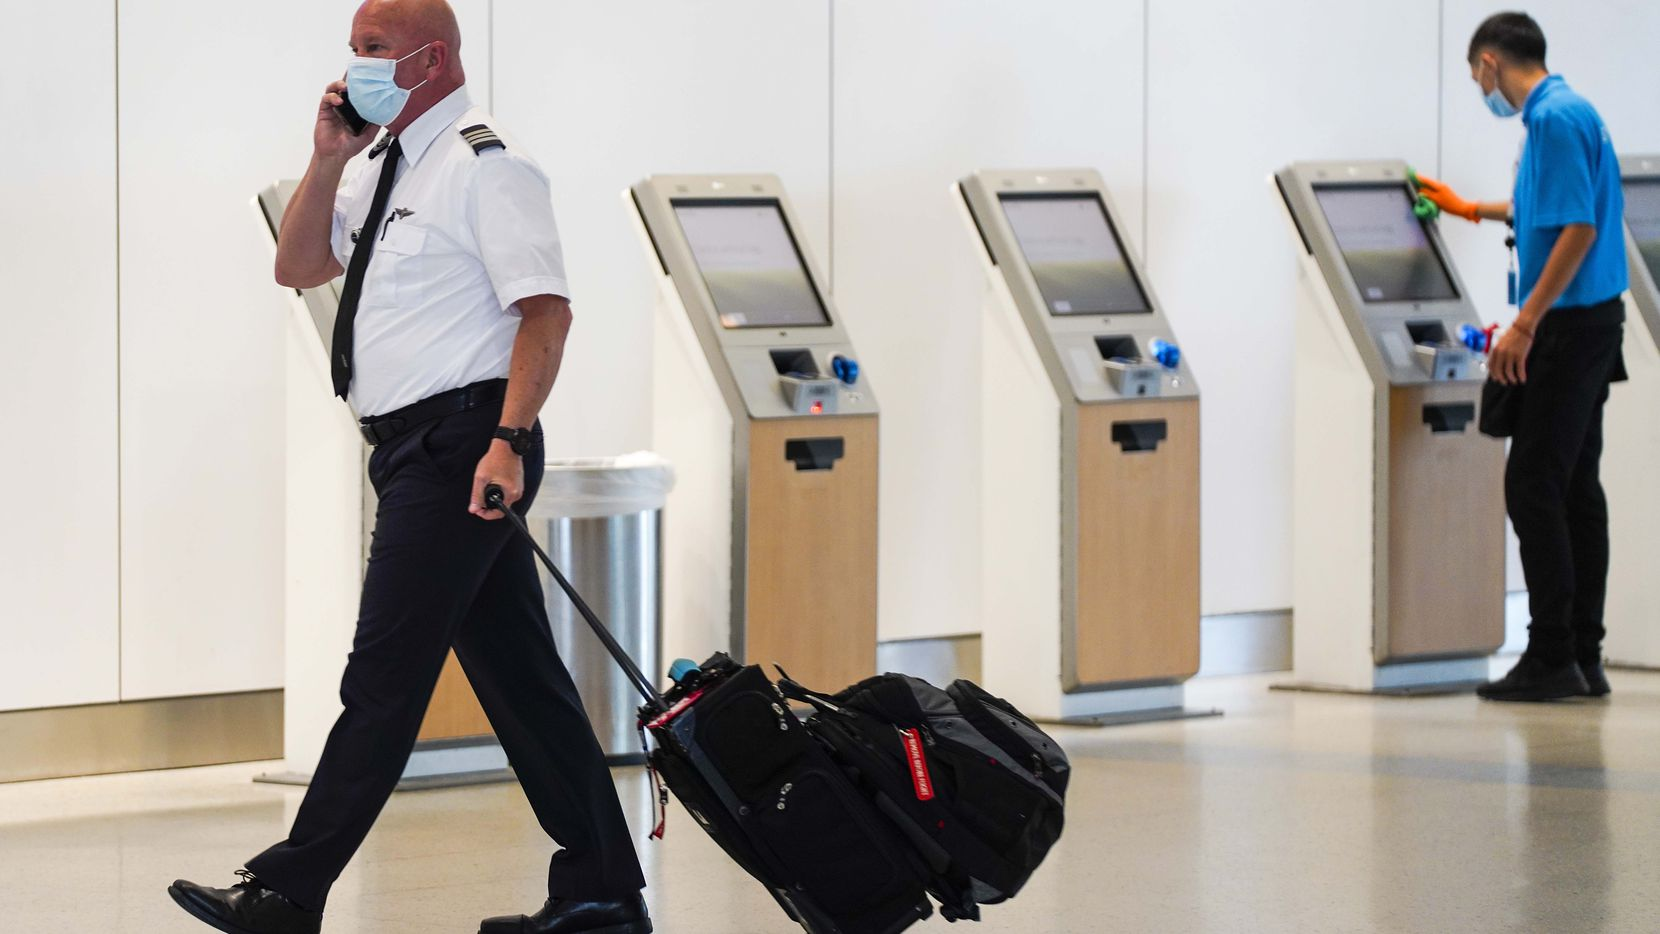 An American Airlines pilot walks past as airport contractor David Ramirez wipes down check in kiosks with disinfectant at Dallas Fort Worth (DFW) International Airport Terminal A on Tuesday, June 30, 2020, in Dallas. (Smiley N. Pool/The Dallas Morning News)